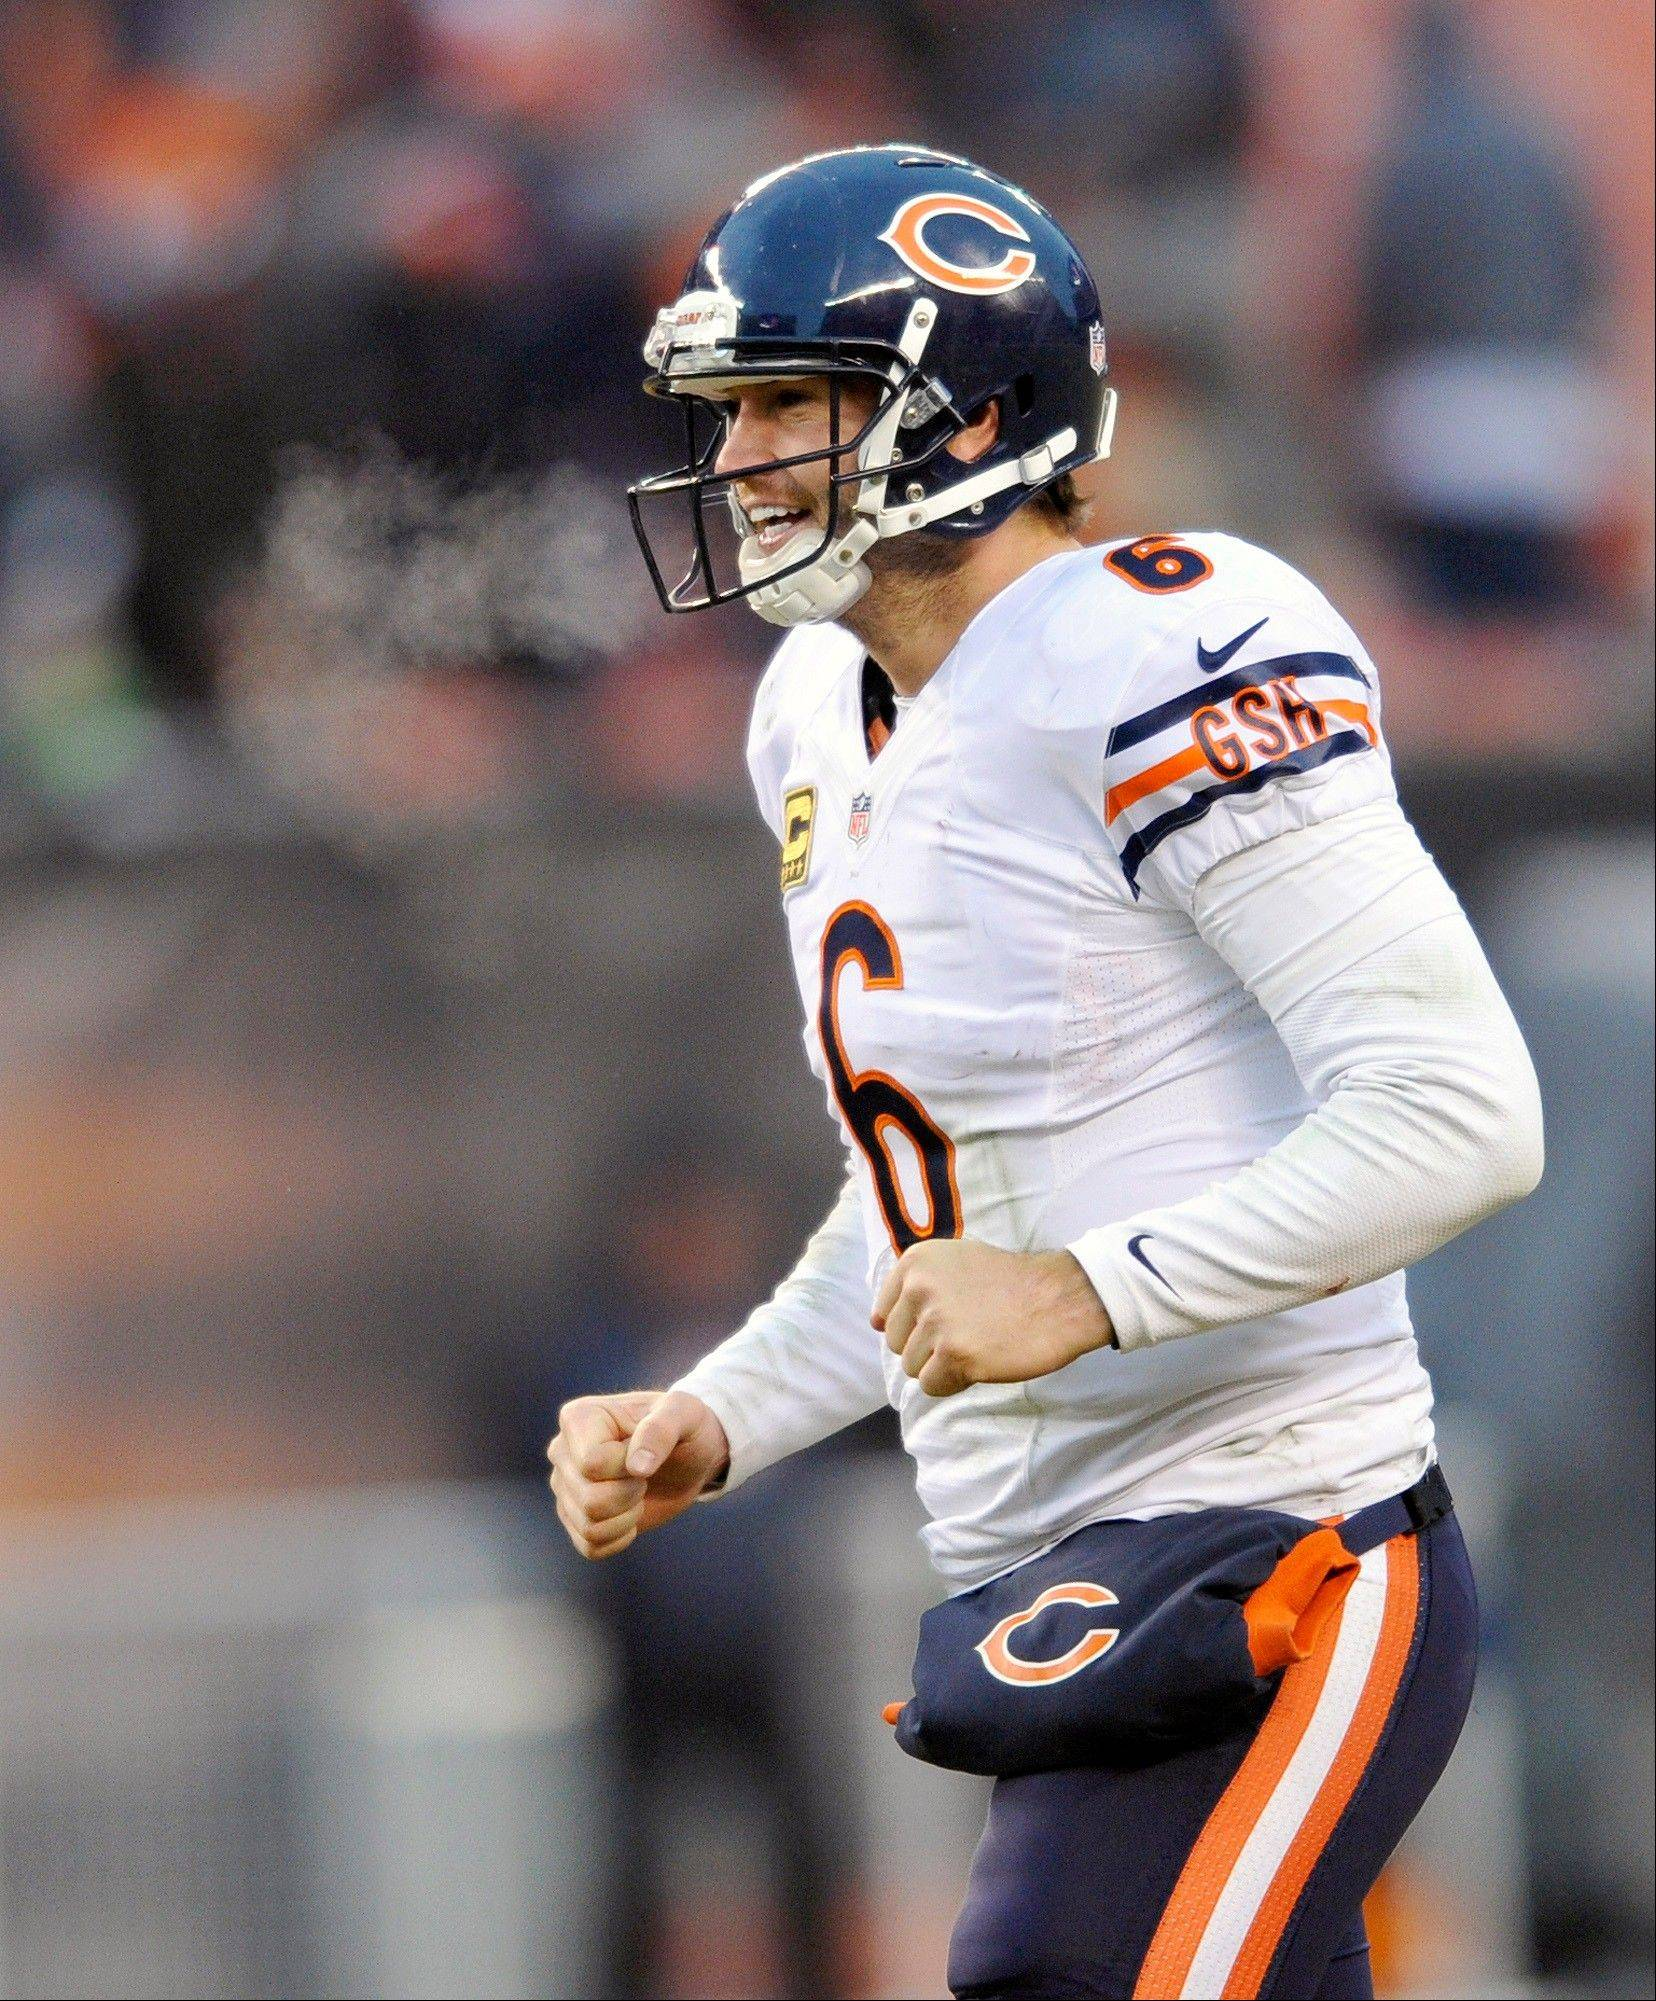 Chicago Bears quarterback Jay Cutler celebrates a touchdown by Bears running back Michael Bush in the fourth quarter of an NFL football game against the Cleveland Browns on Sunday, Dec. 15, 2013, in Cleveland. Chicago won 38-31. (AP Photo/David Richard)